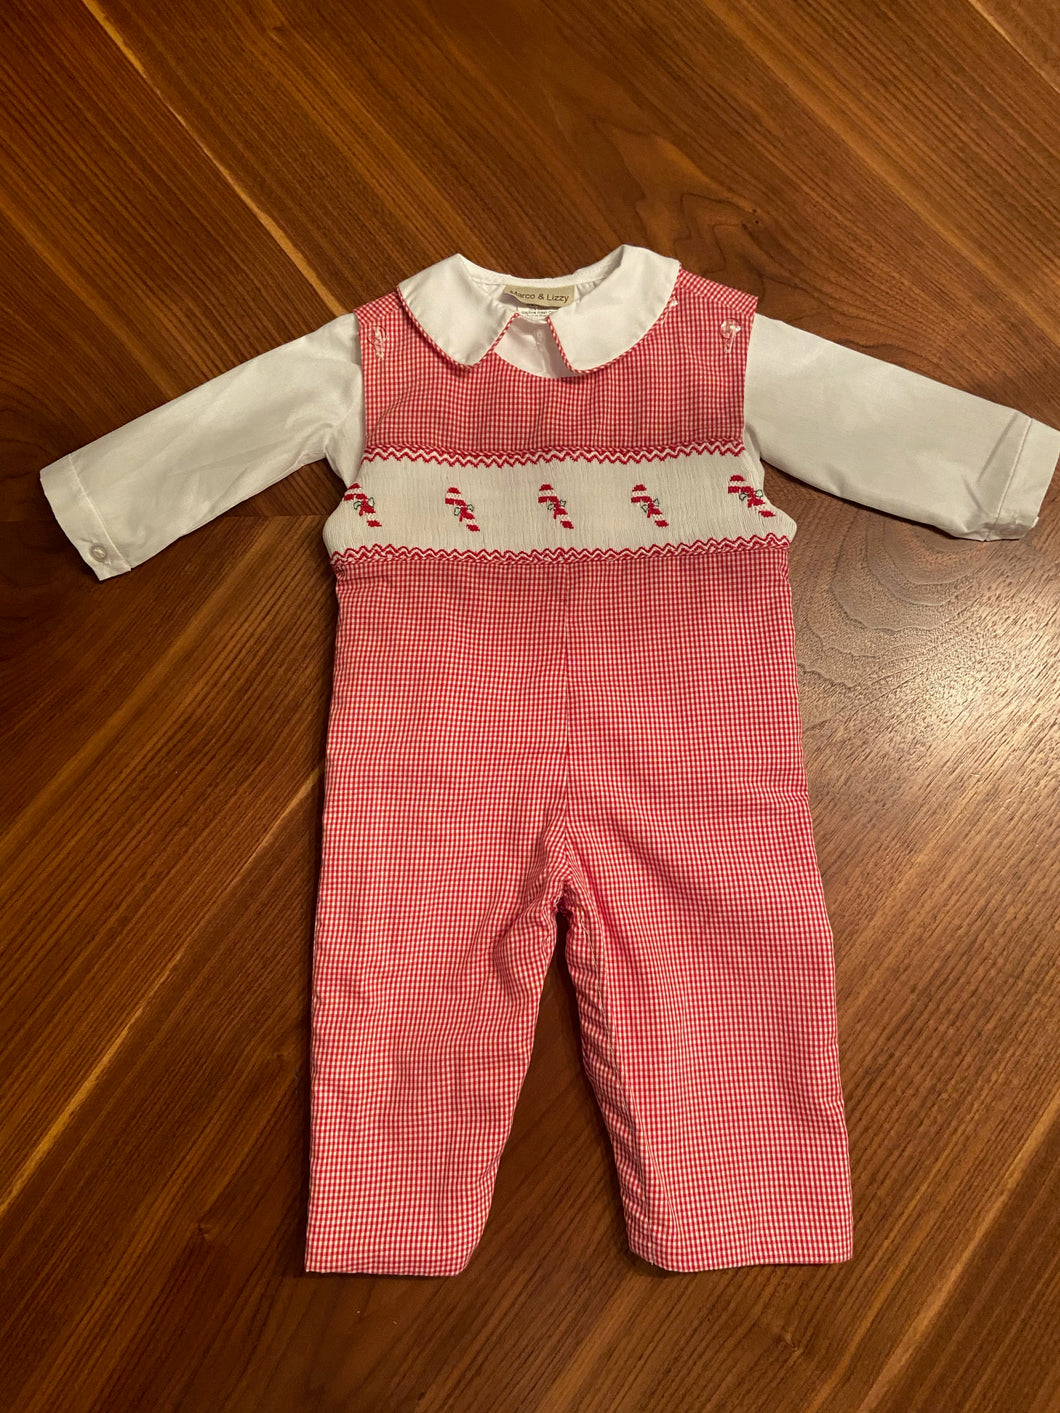 Candy Canes Hand Smocked Romper